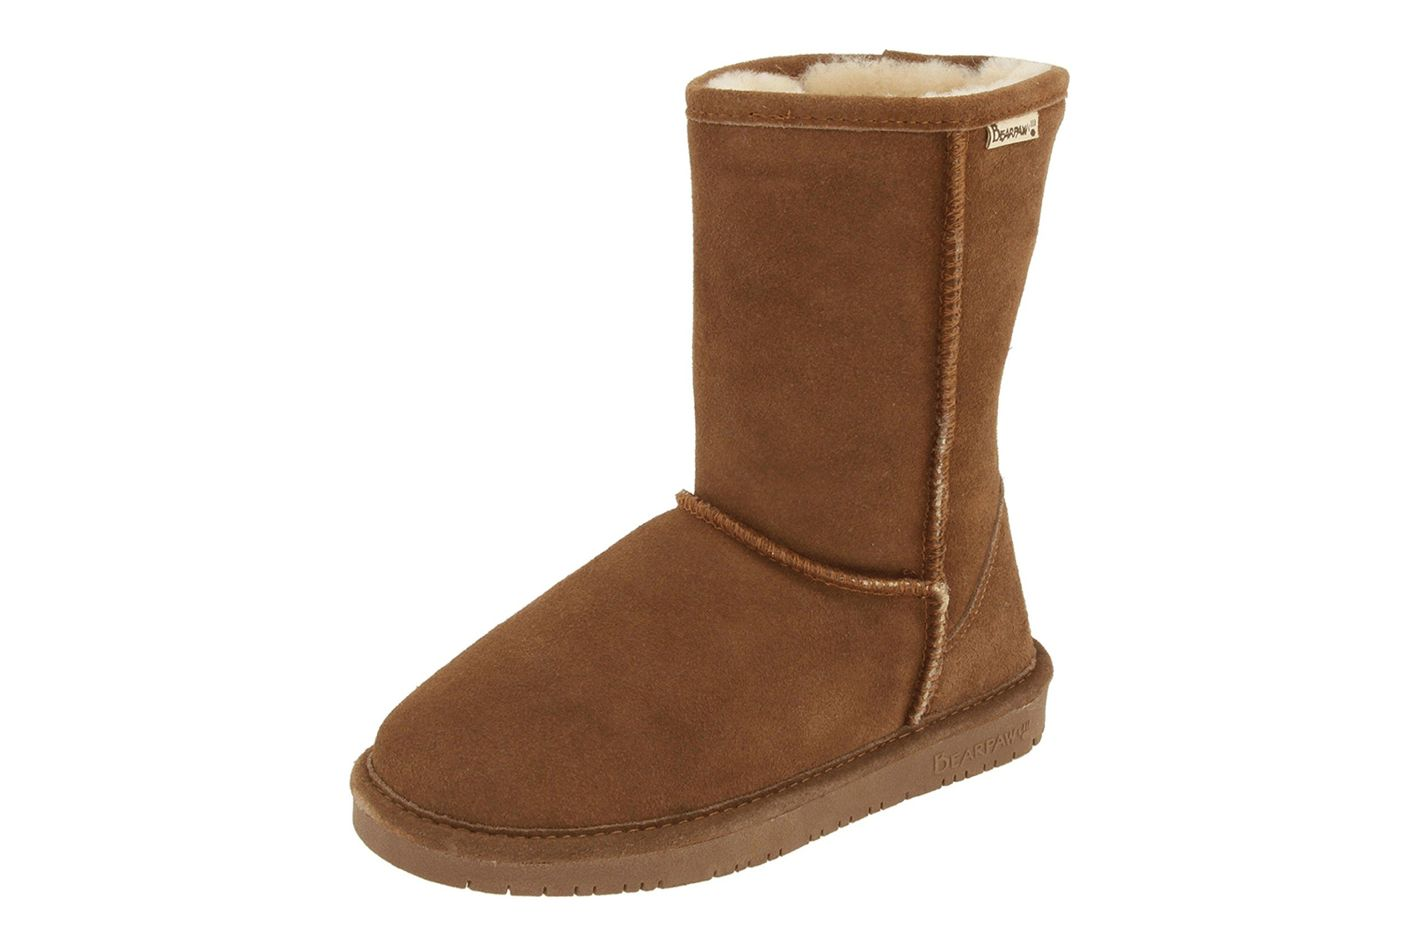 Best Ugg-Like Boot